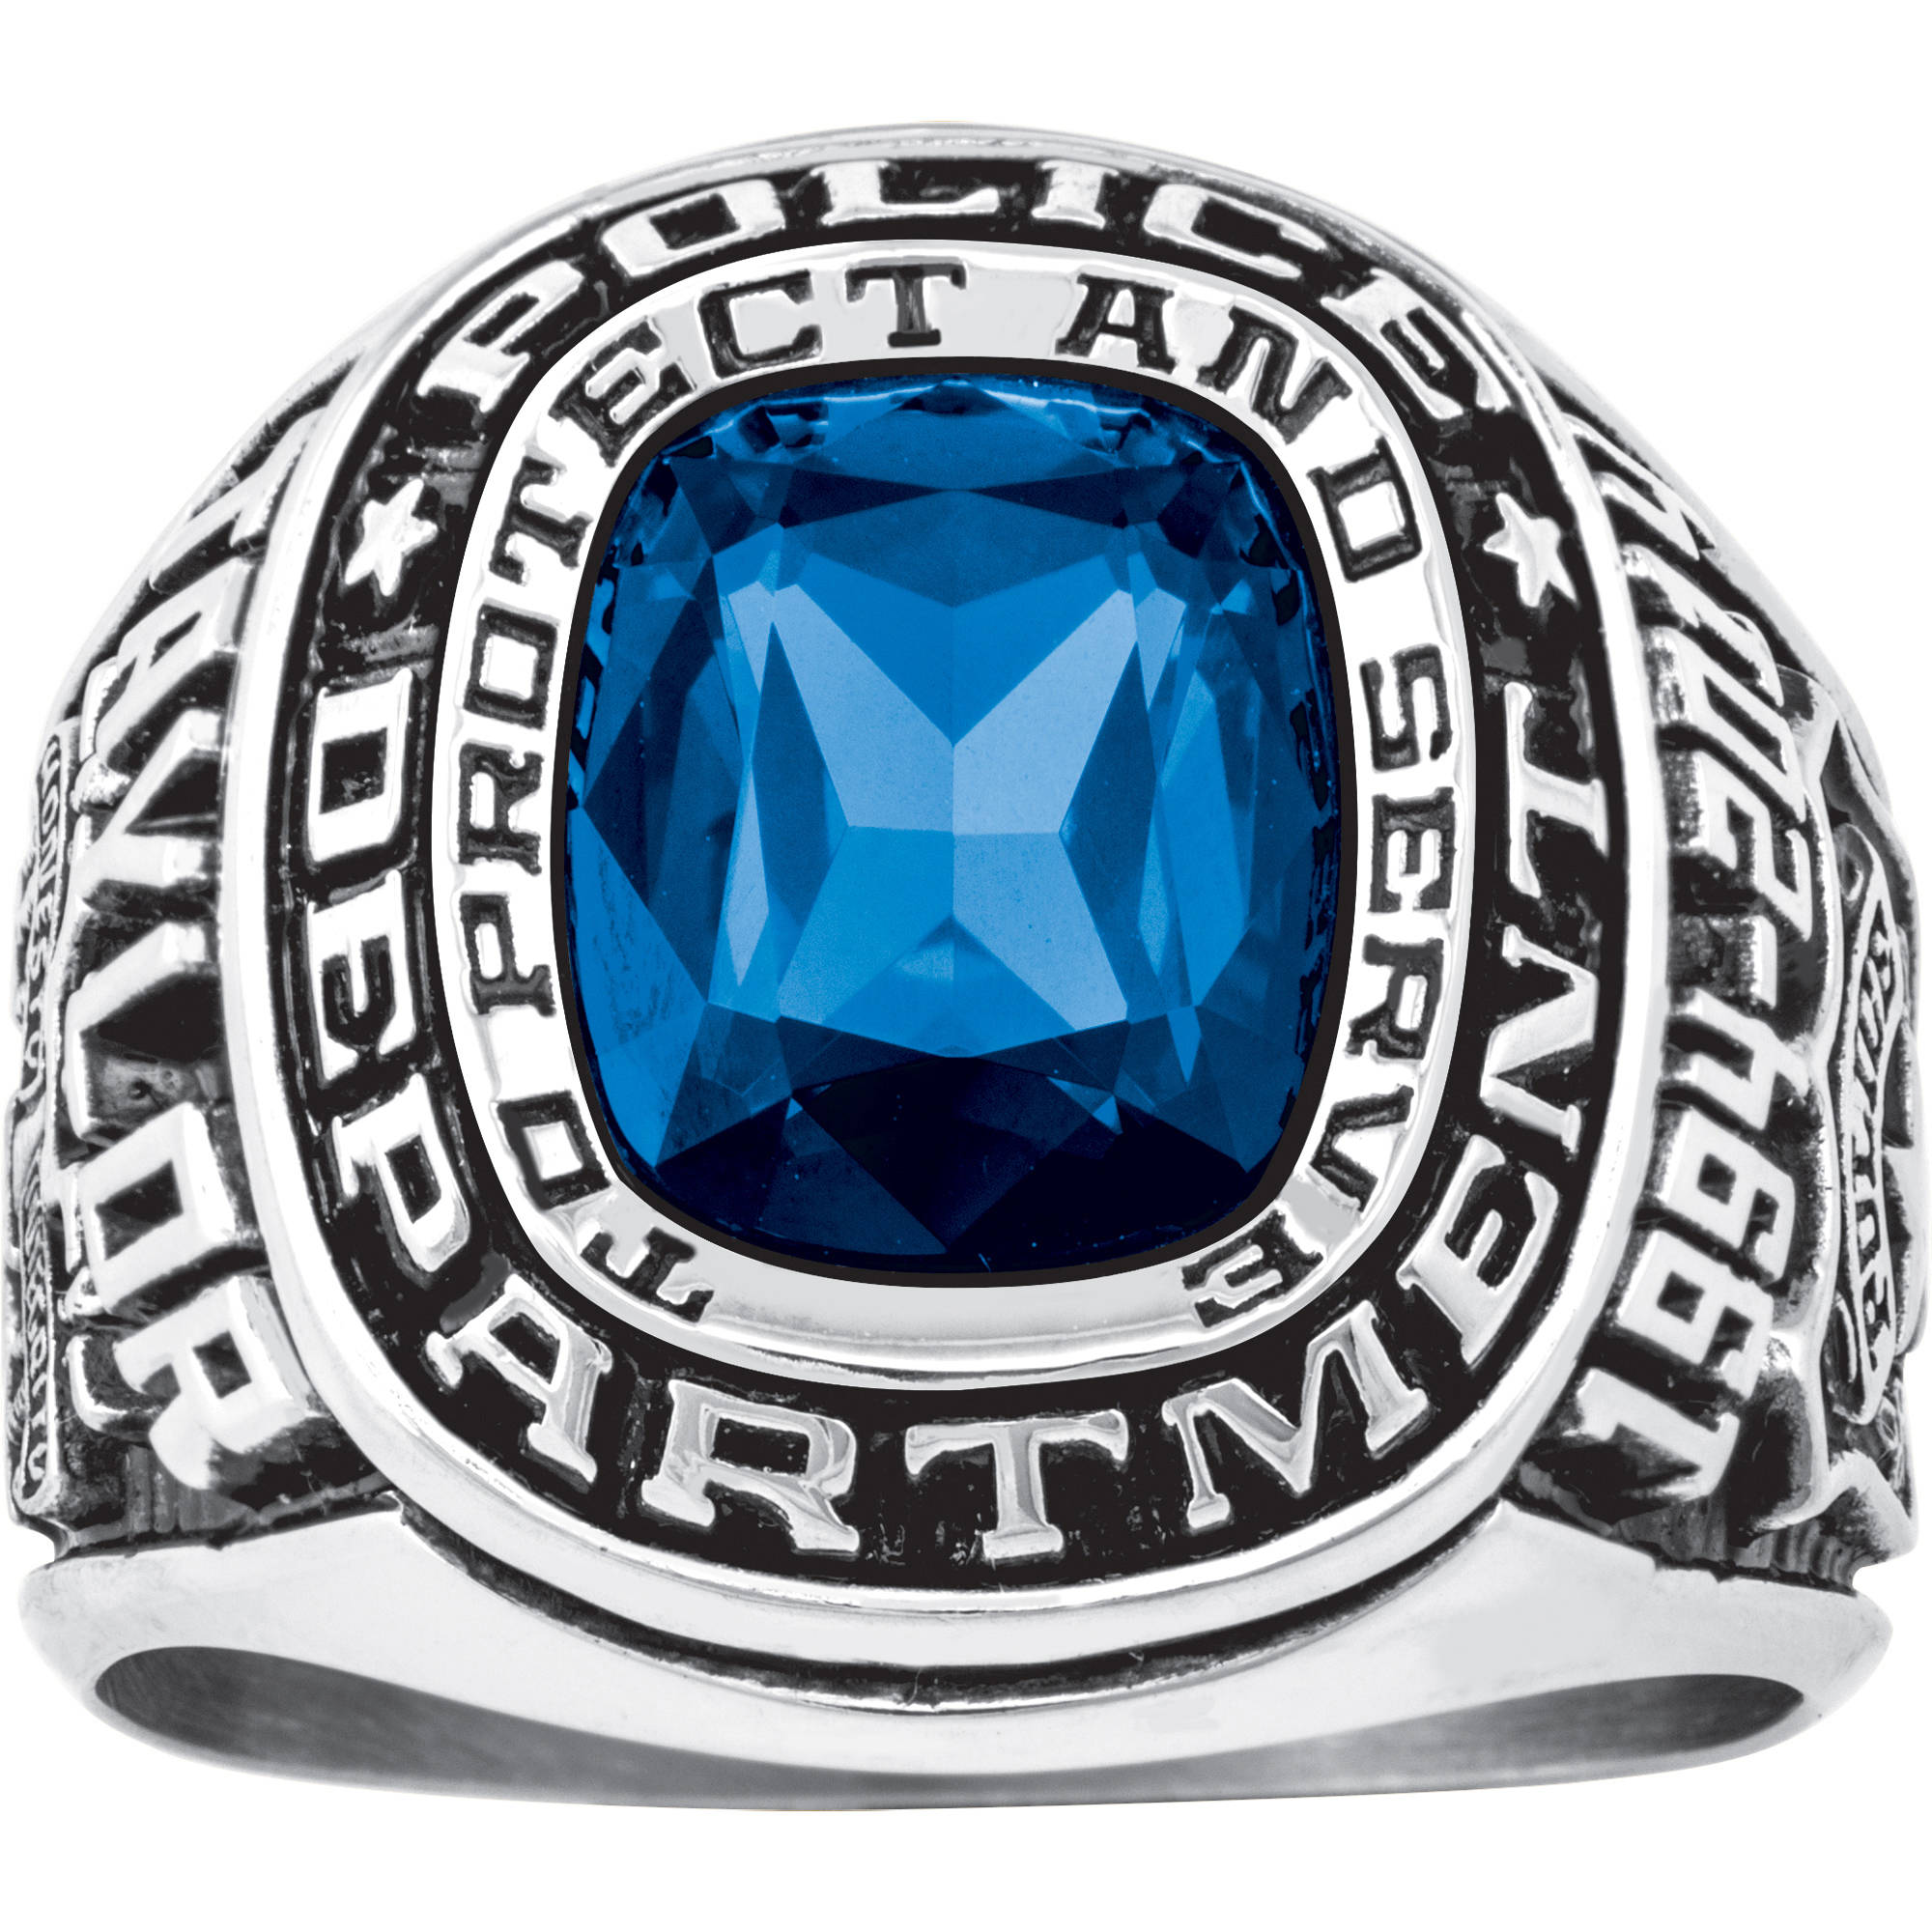 Personalized Keepsake Men's Police Department Ring